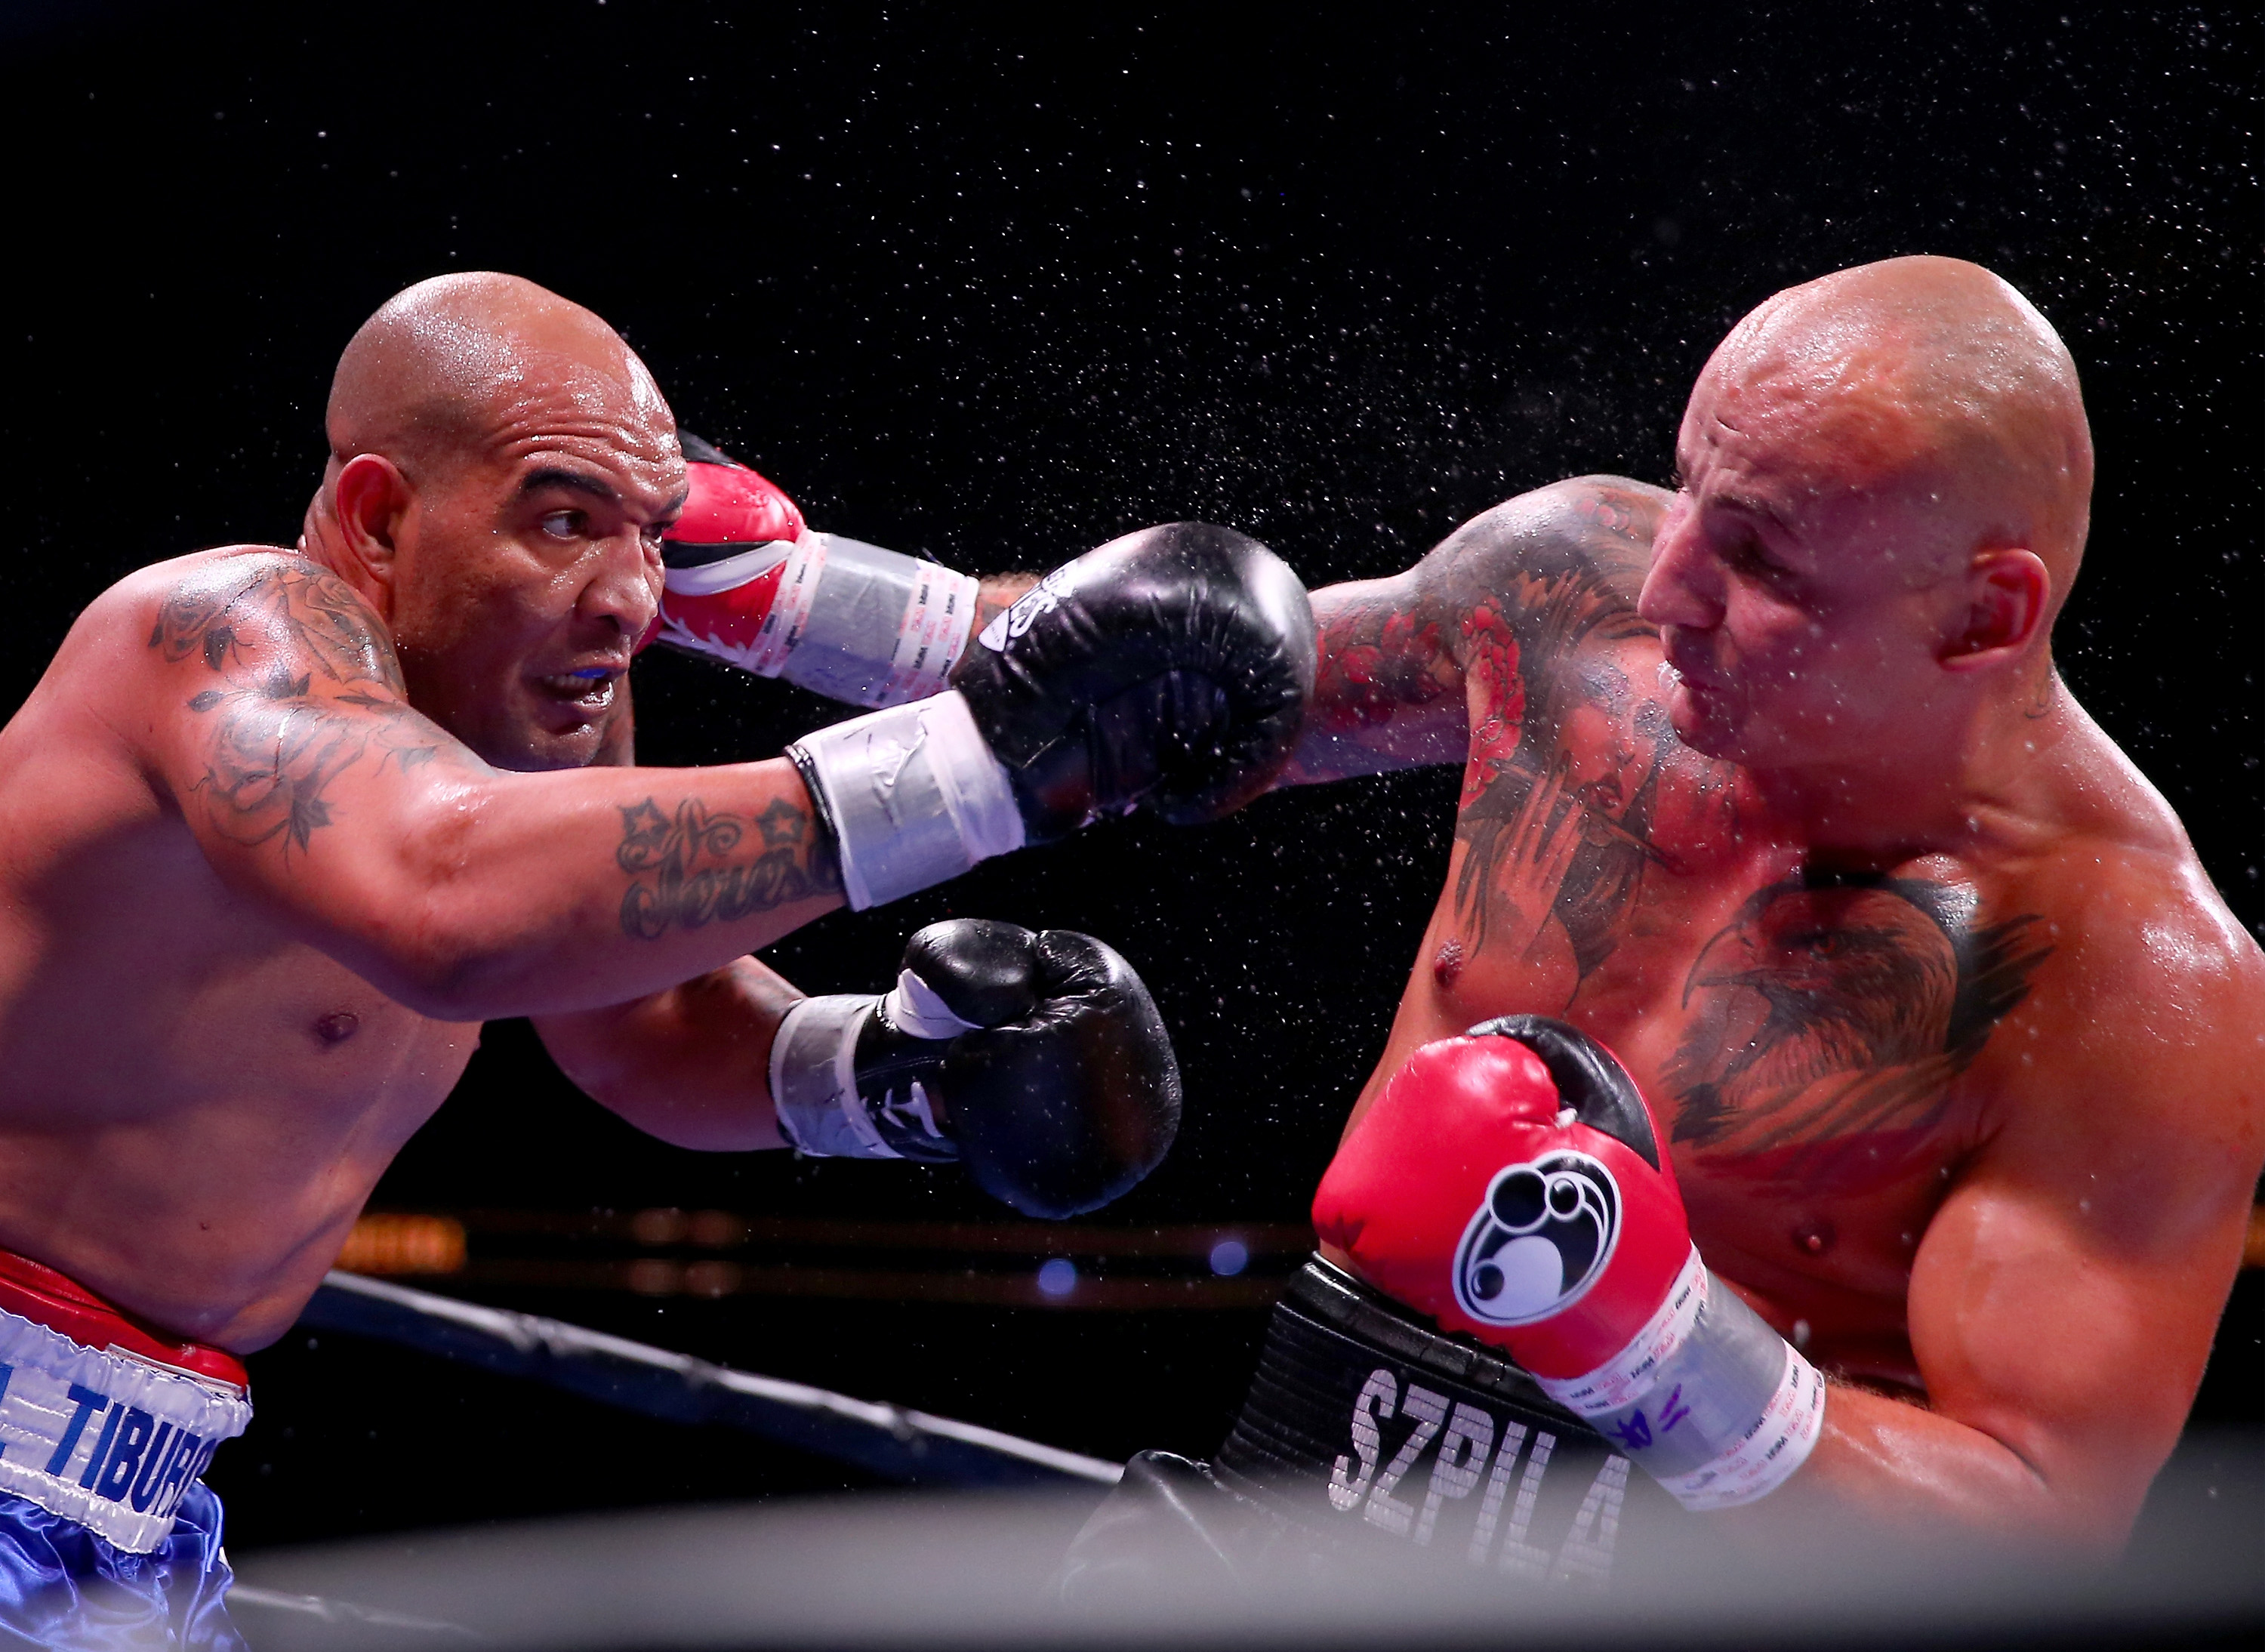 Artur Szpilka (R) in his recent bout against Yasmany Consuegra in August 2015. (Getty)